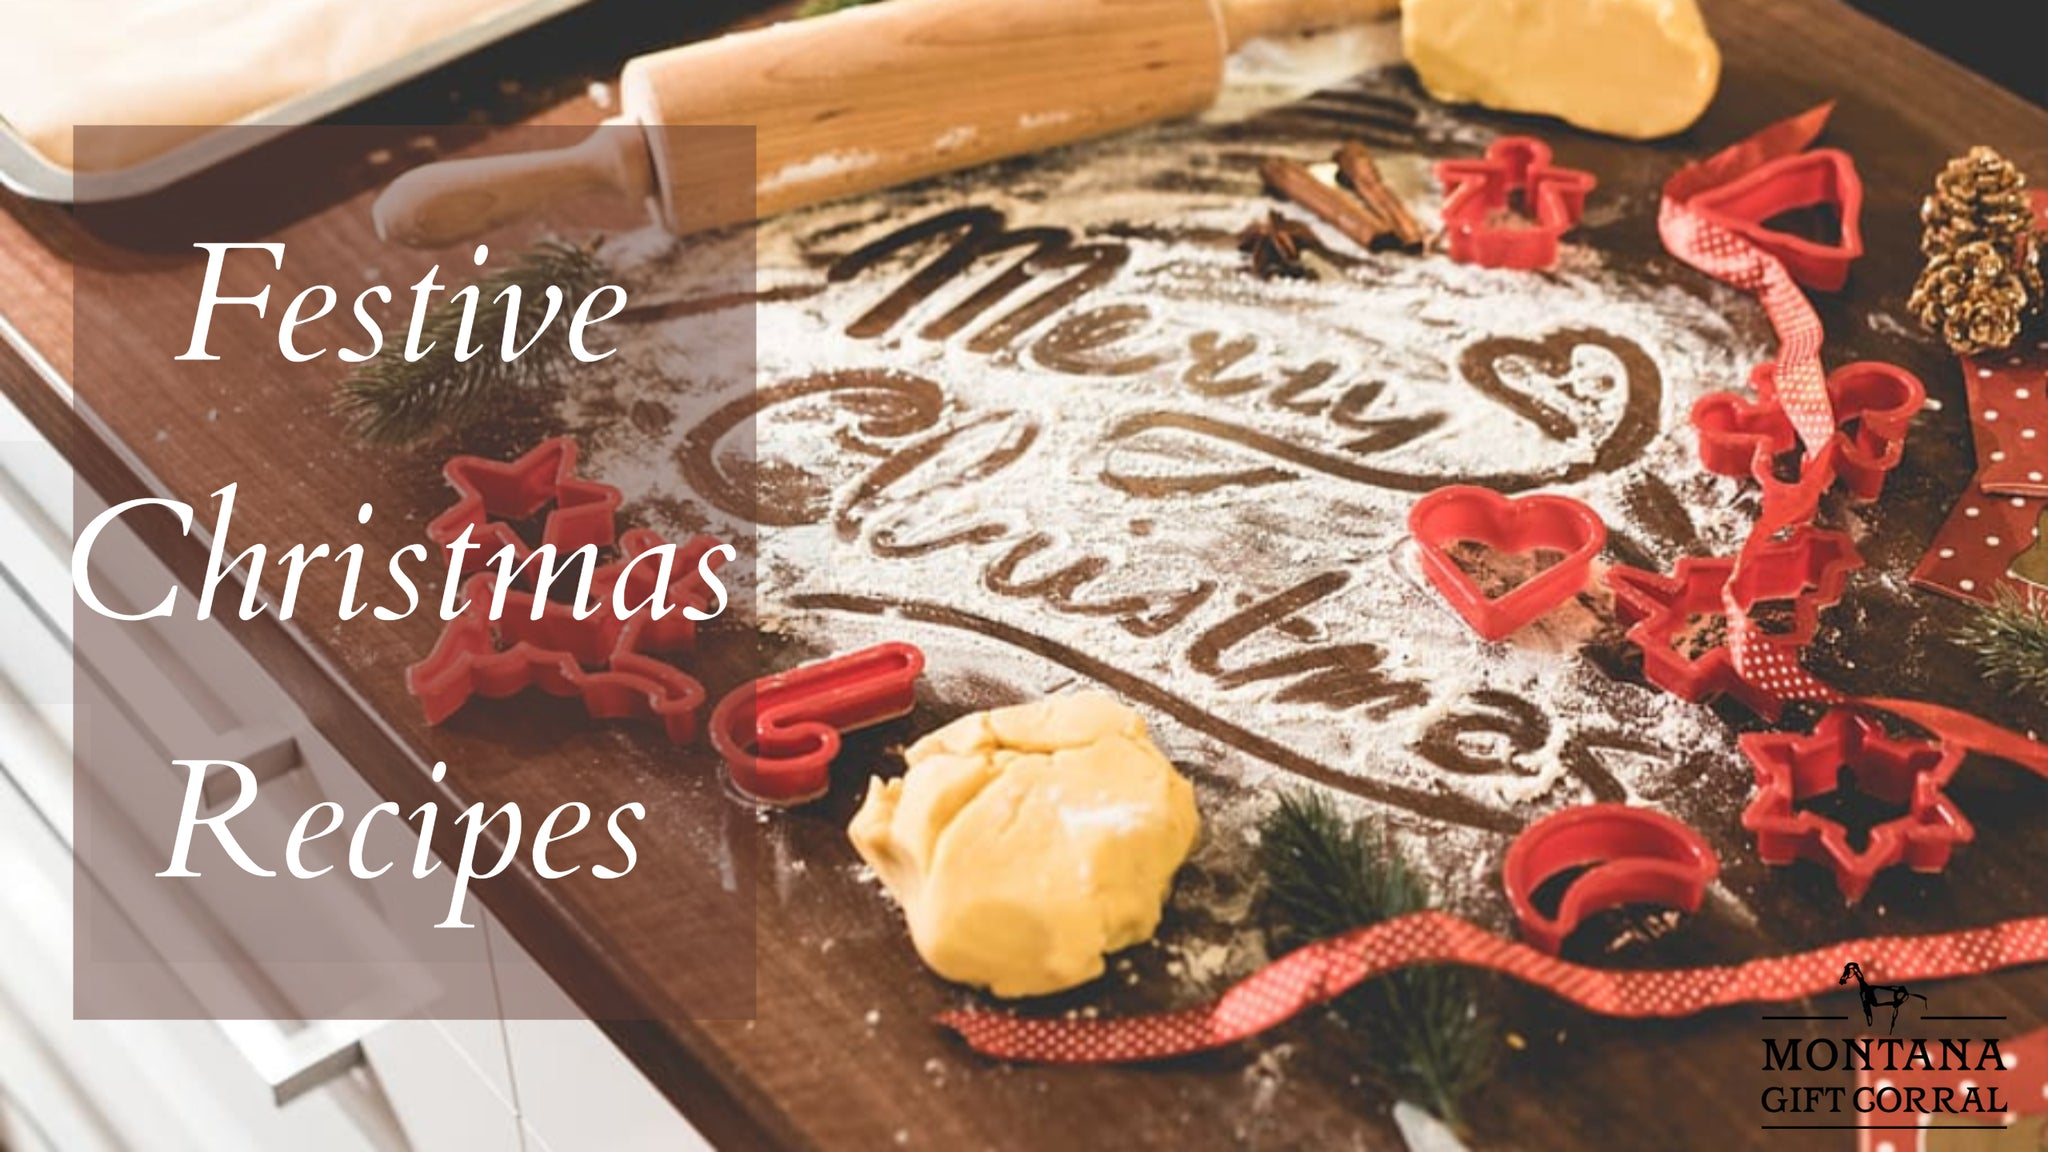 Festive Christmas Recipes